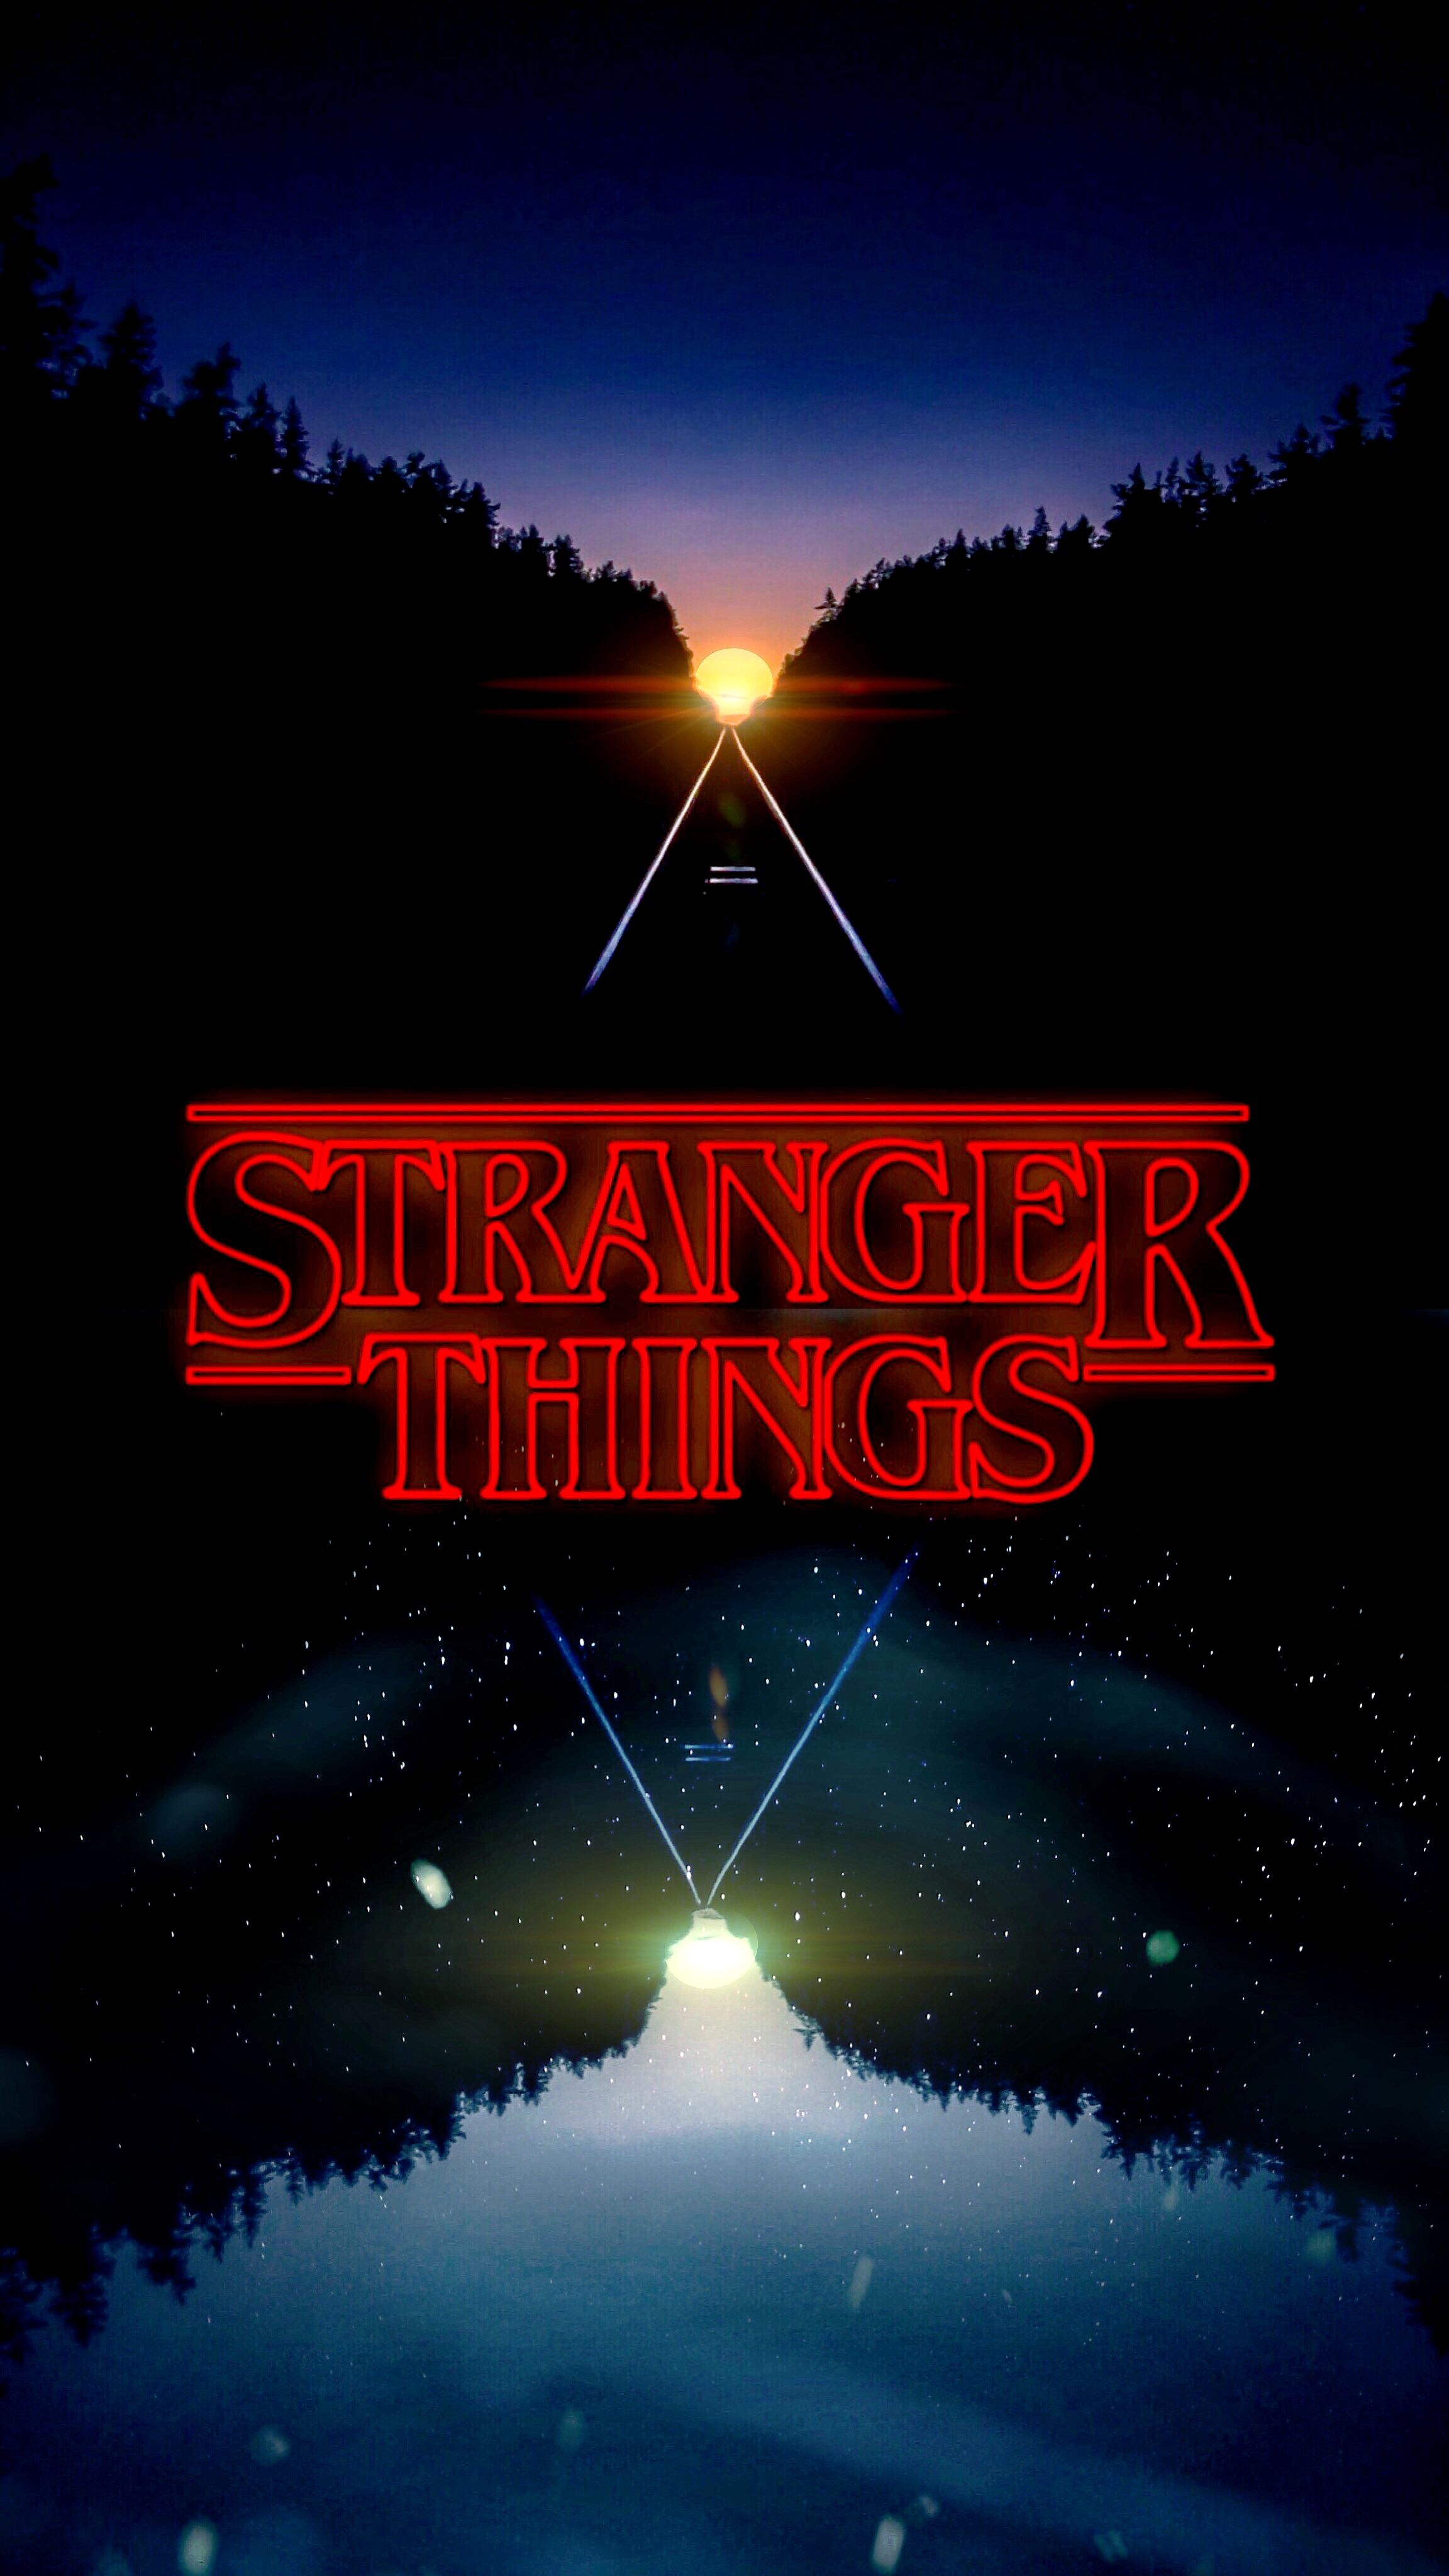 Pin By Lilzdaddy On Stranger Things Stranger Things Wallpaper Stranger Things Poster Eleven Stranger Things